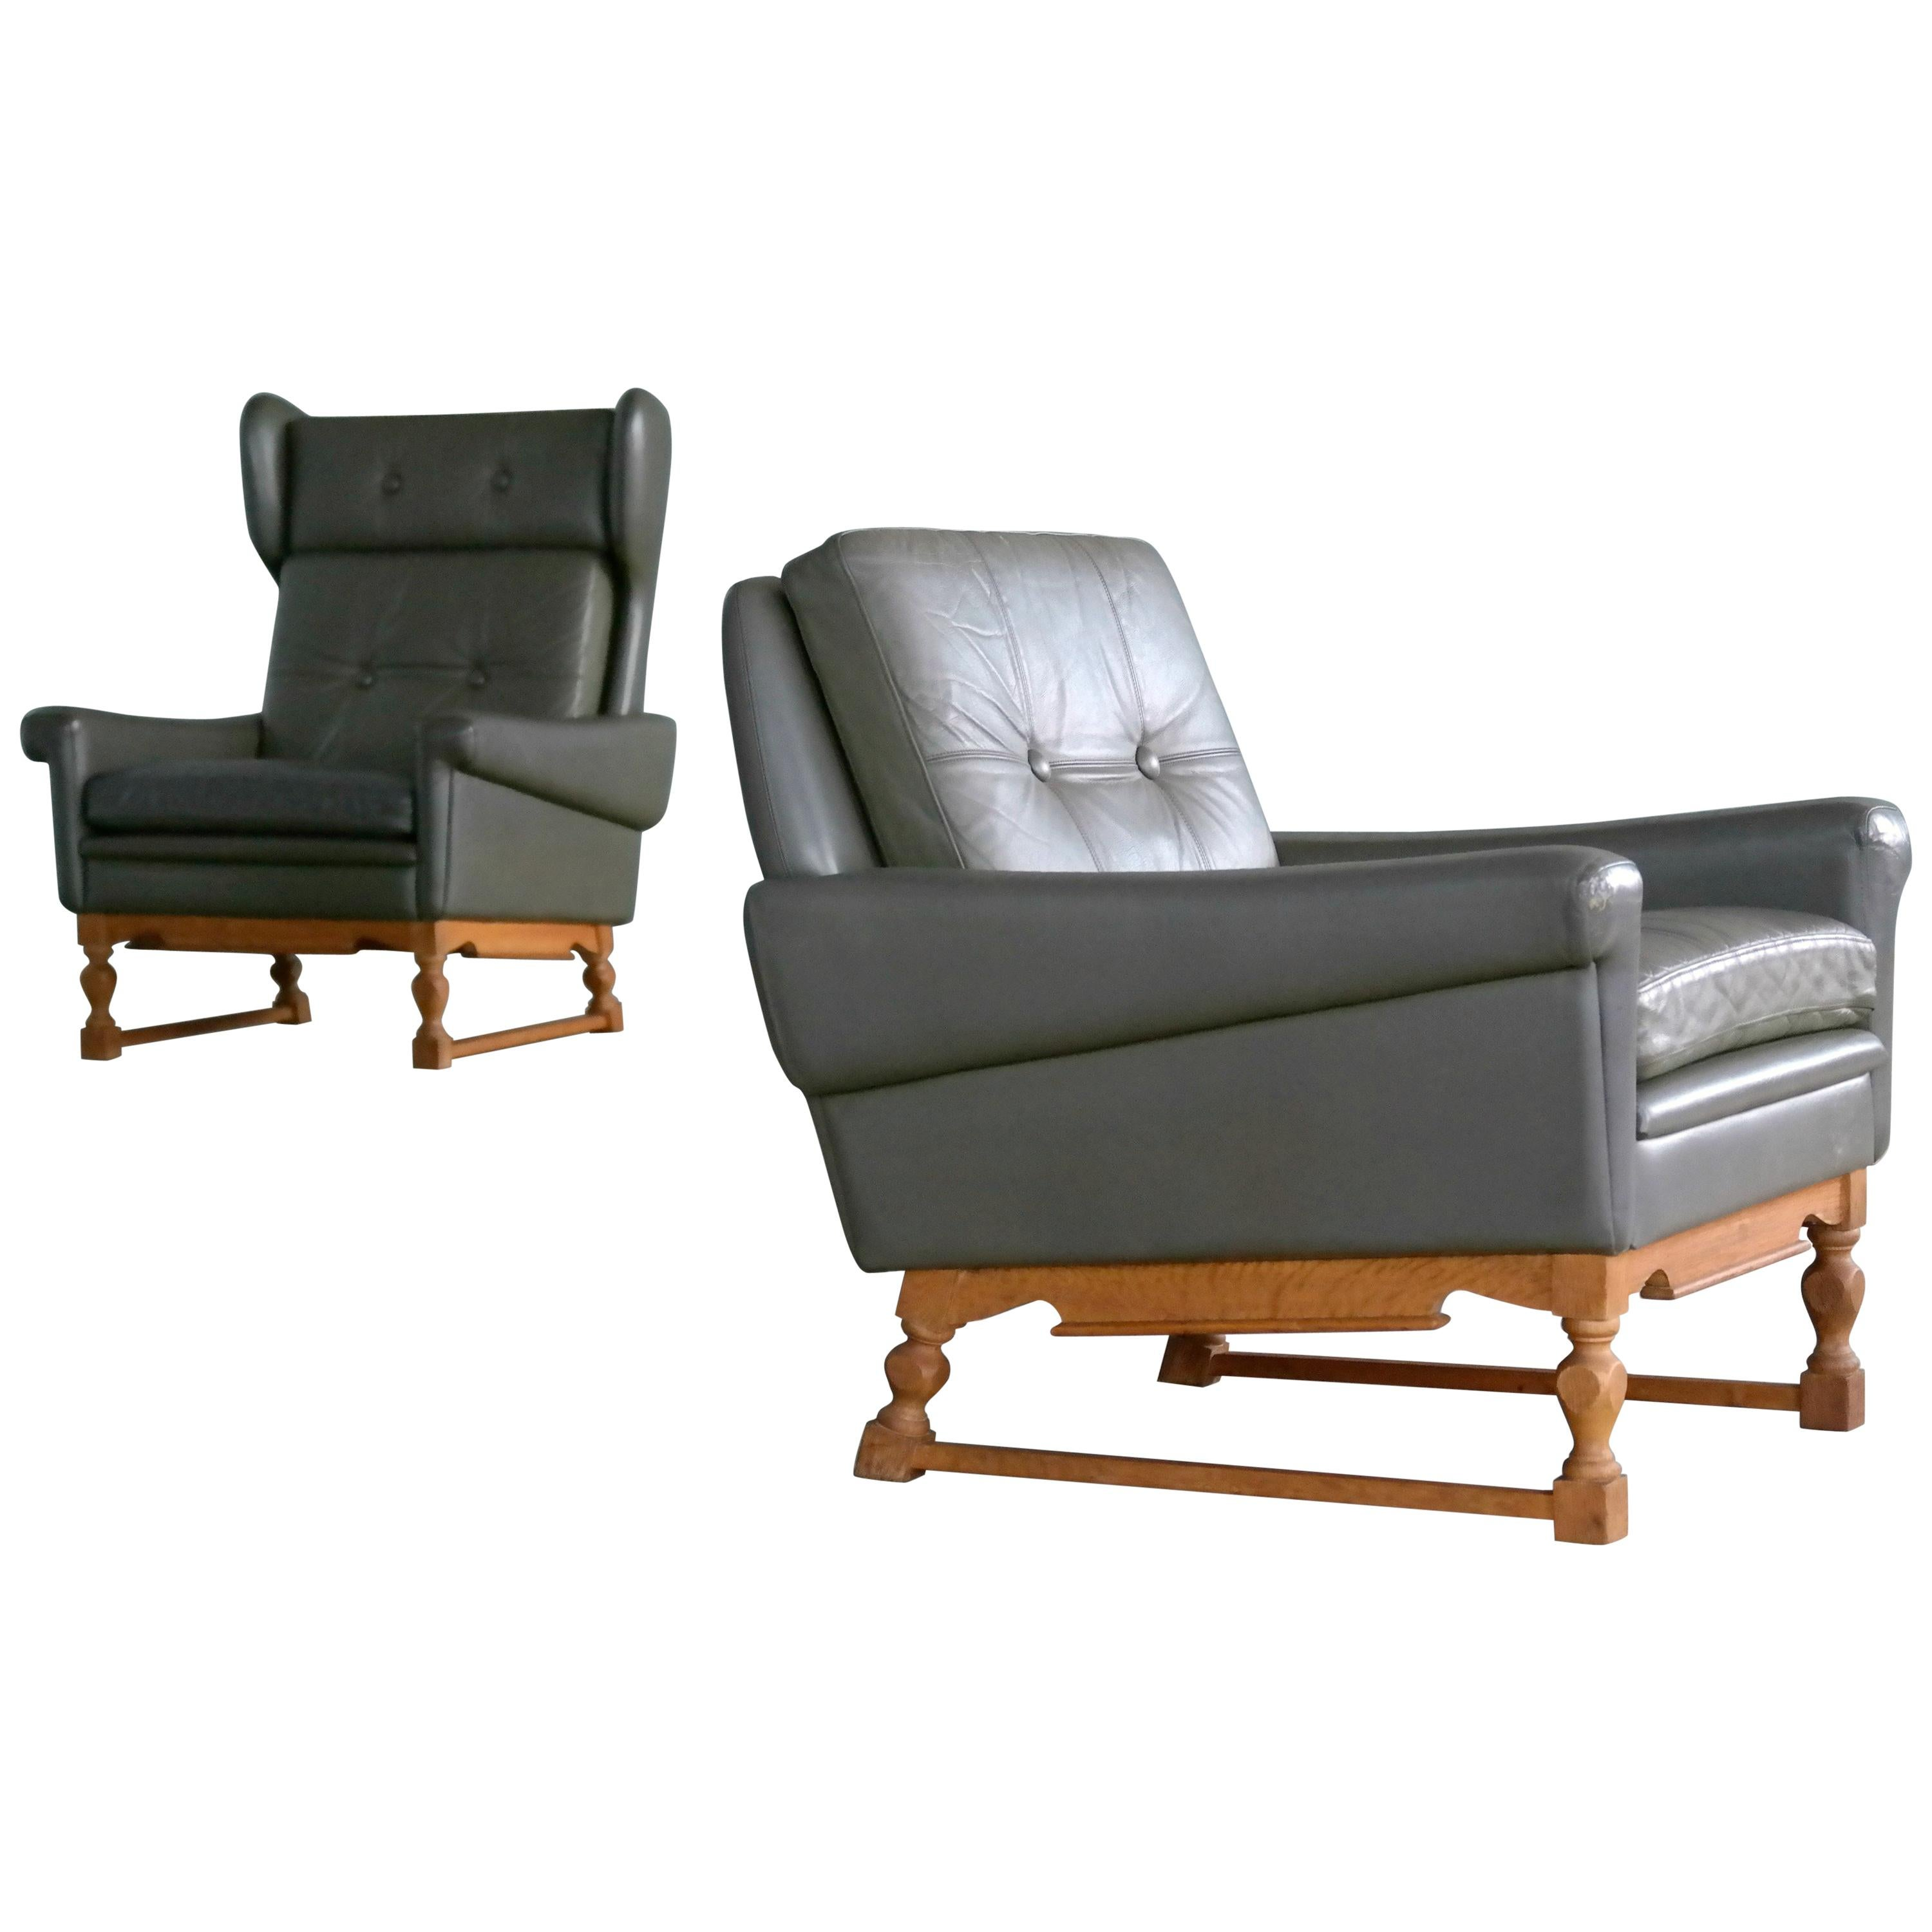 Svend Skipper Pair of High and Low Back Lounge Chairs in Green Leather